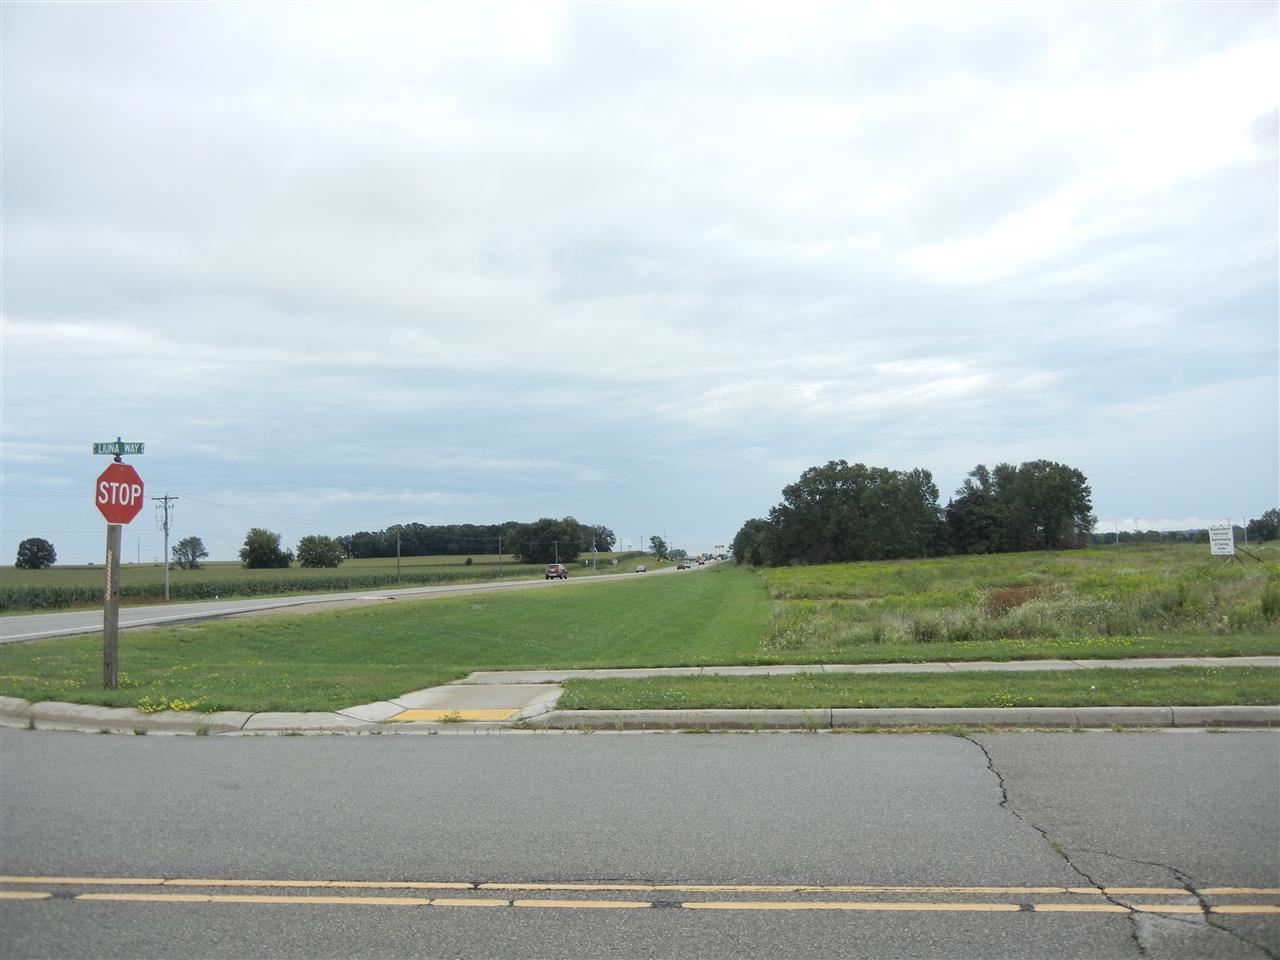 Lot 8 Liuna Way, Deforest WI 53532 - Photo 2